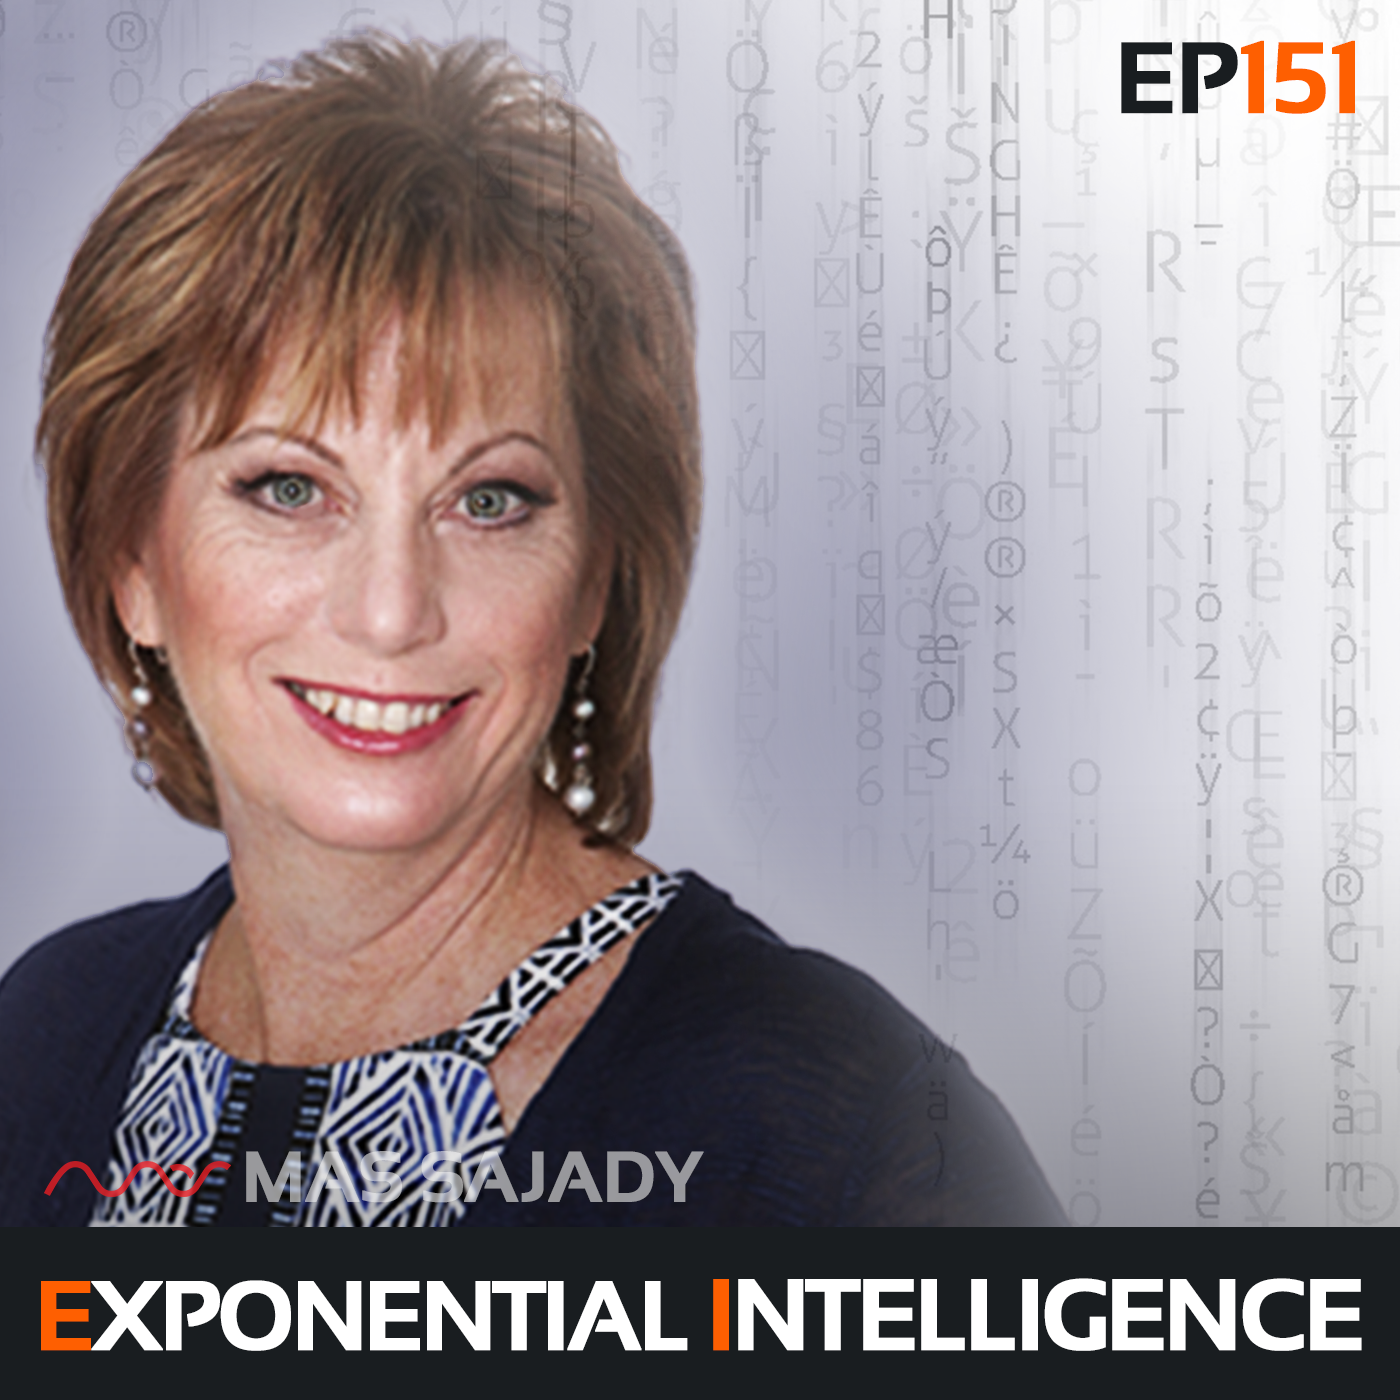 mas-sajady-exponential-intelligence-podcast-151-myths-success-dawn-moore-part-1.png